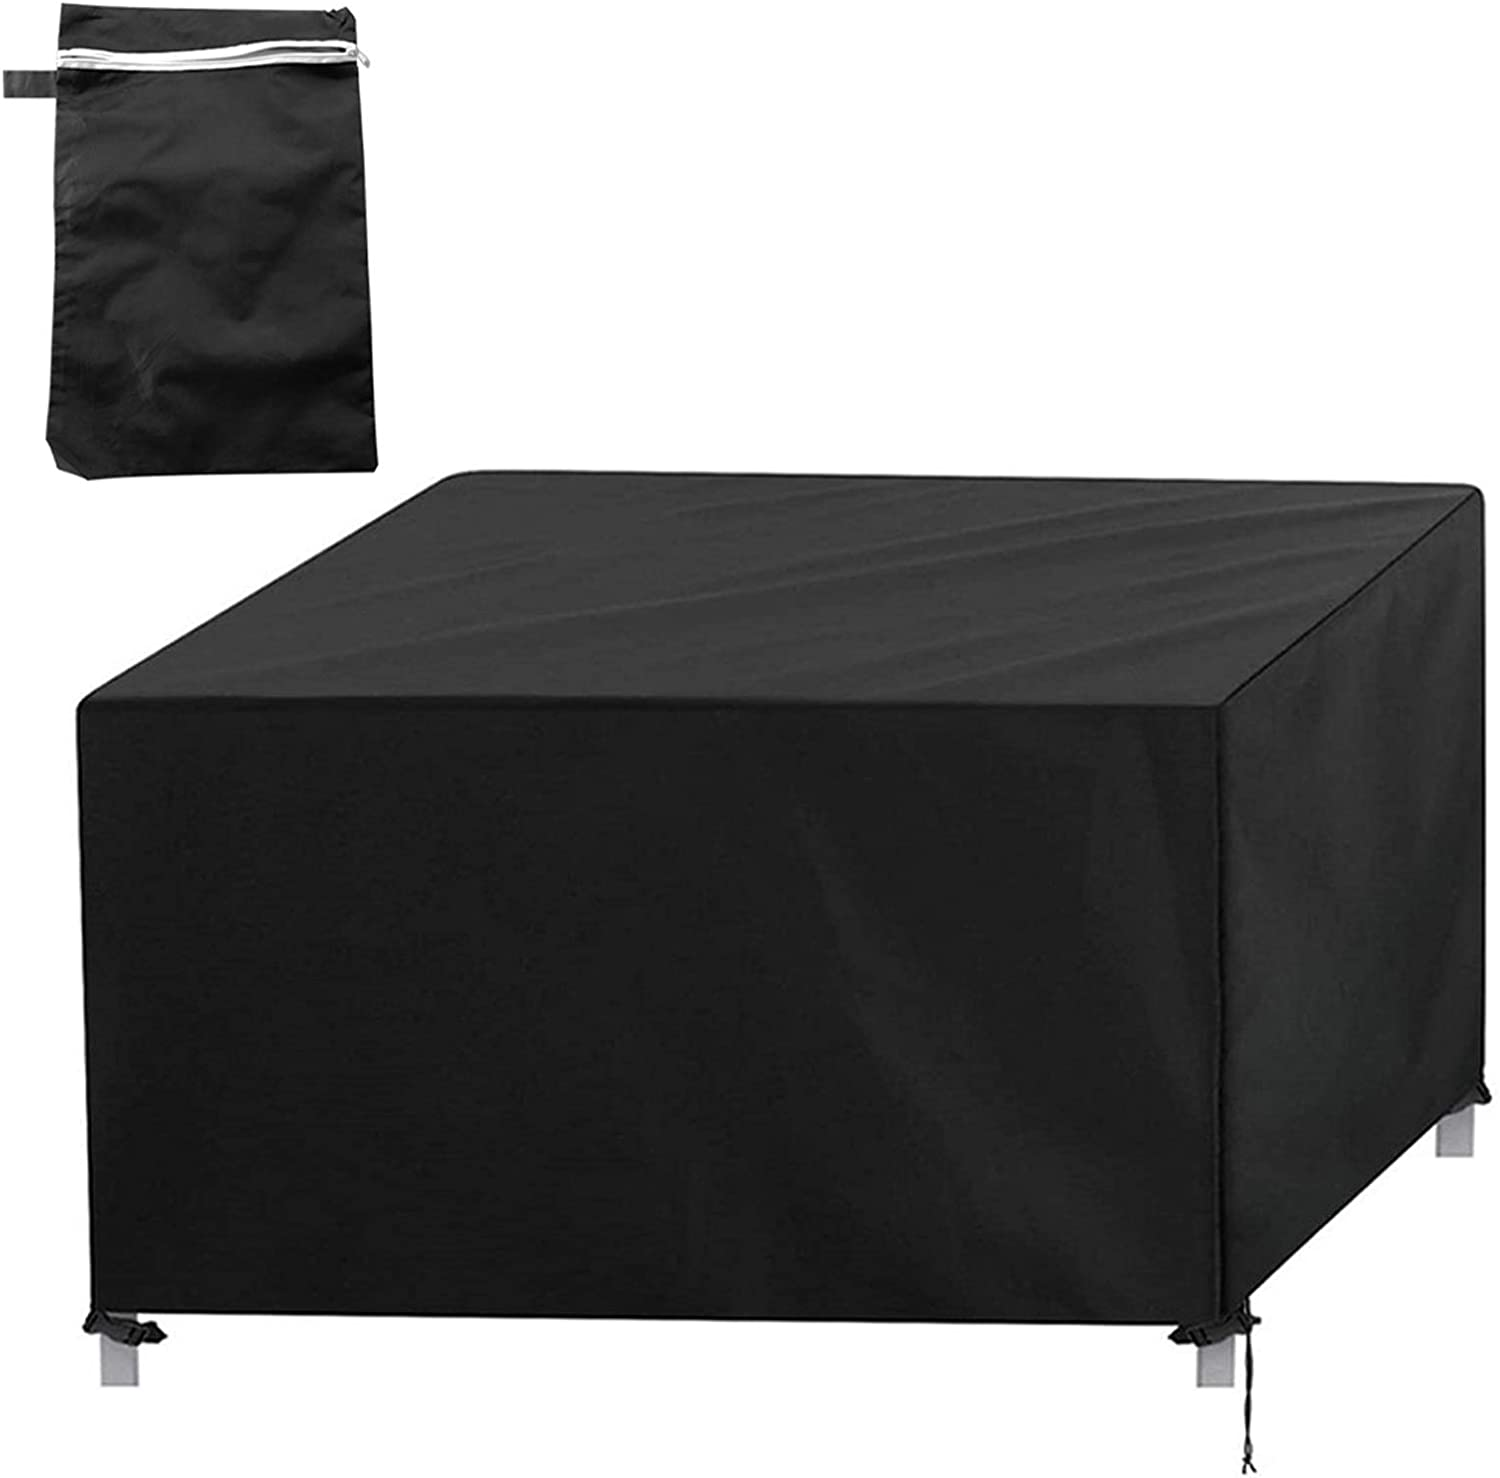 YSISLY Garden Furniture Cover, Outdoor Table Cover 420D Oxford Fabric Waterproof Anti-UV Patio Protectors Patio Table Cover, Windproof Anti-Uv Furniture Protection (87 × 87 × 77cm)